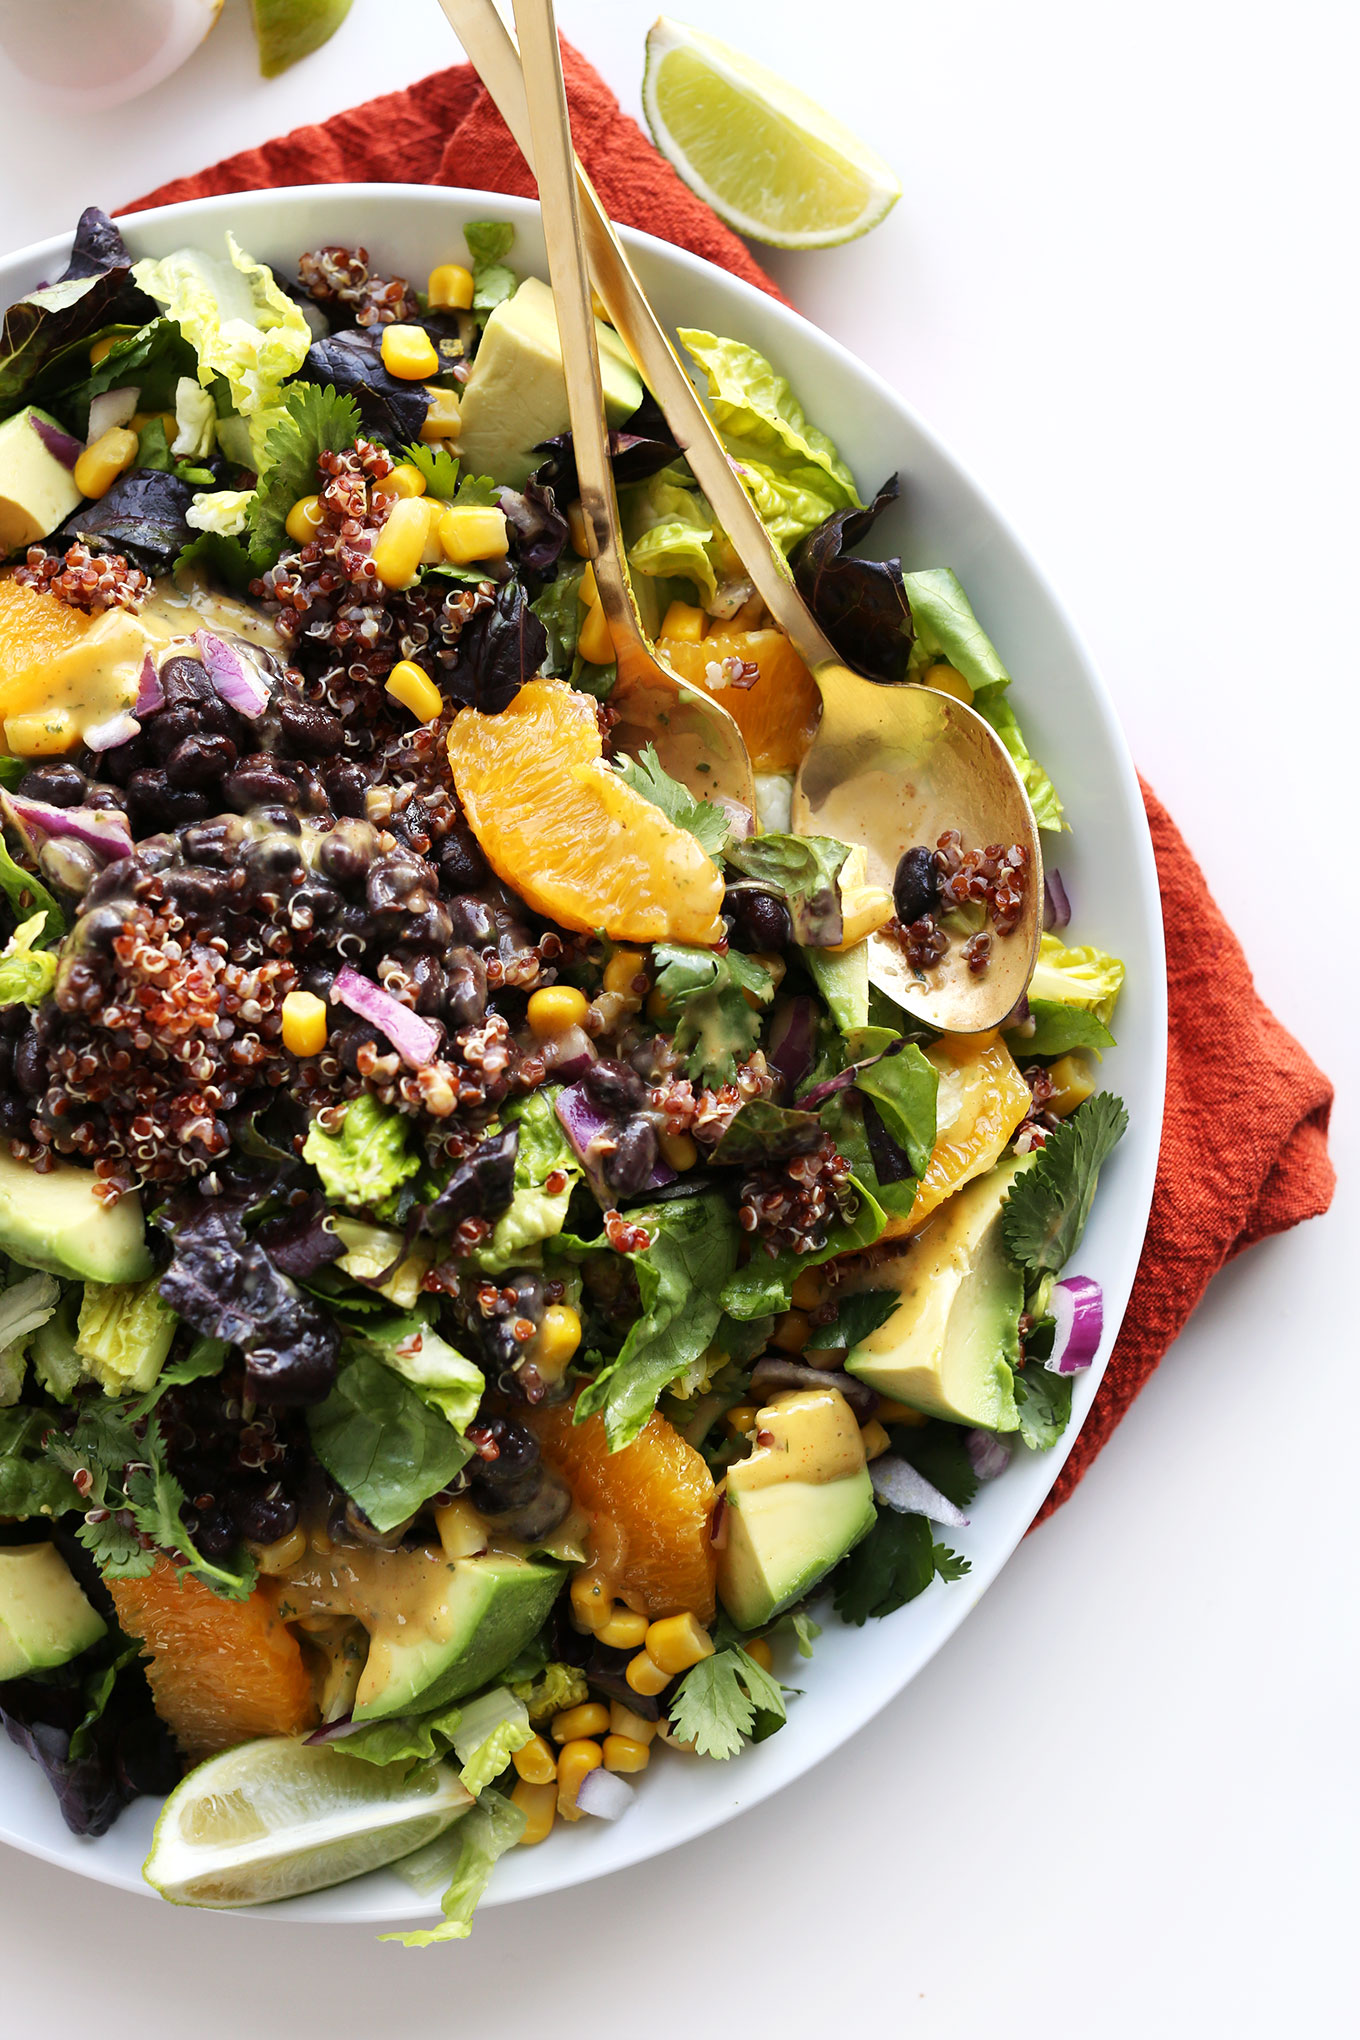 Big serving of our Mexican Vegan Salad recipe with Cilantro Orange Chili Dressing